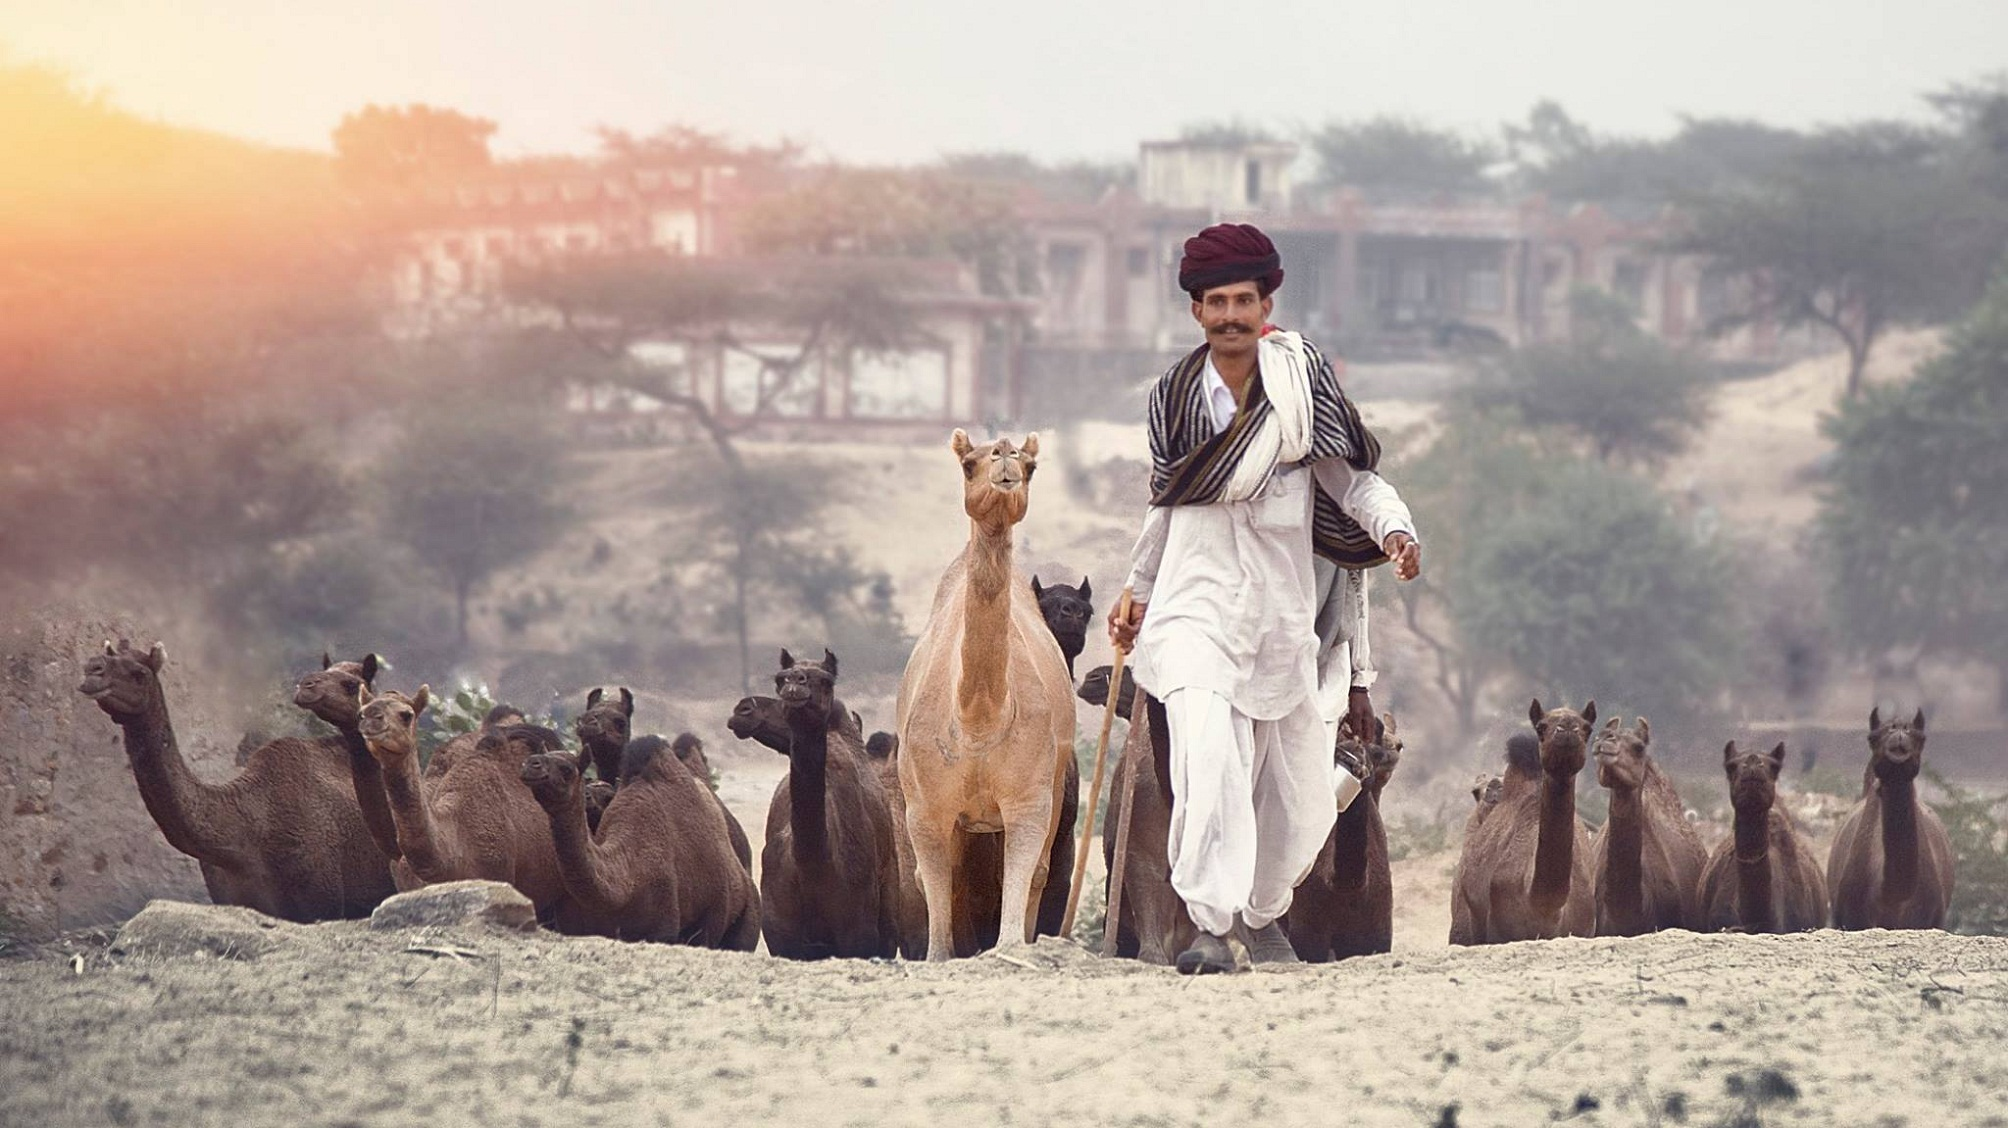 Camel Fair : Pushkar (20 Oct. - 1 Nov. 2017)